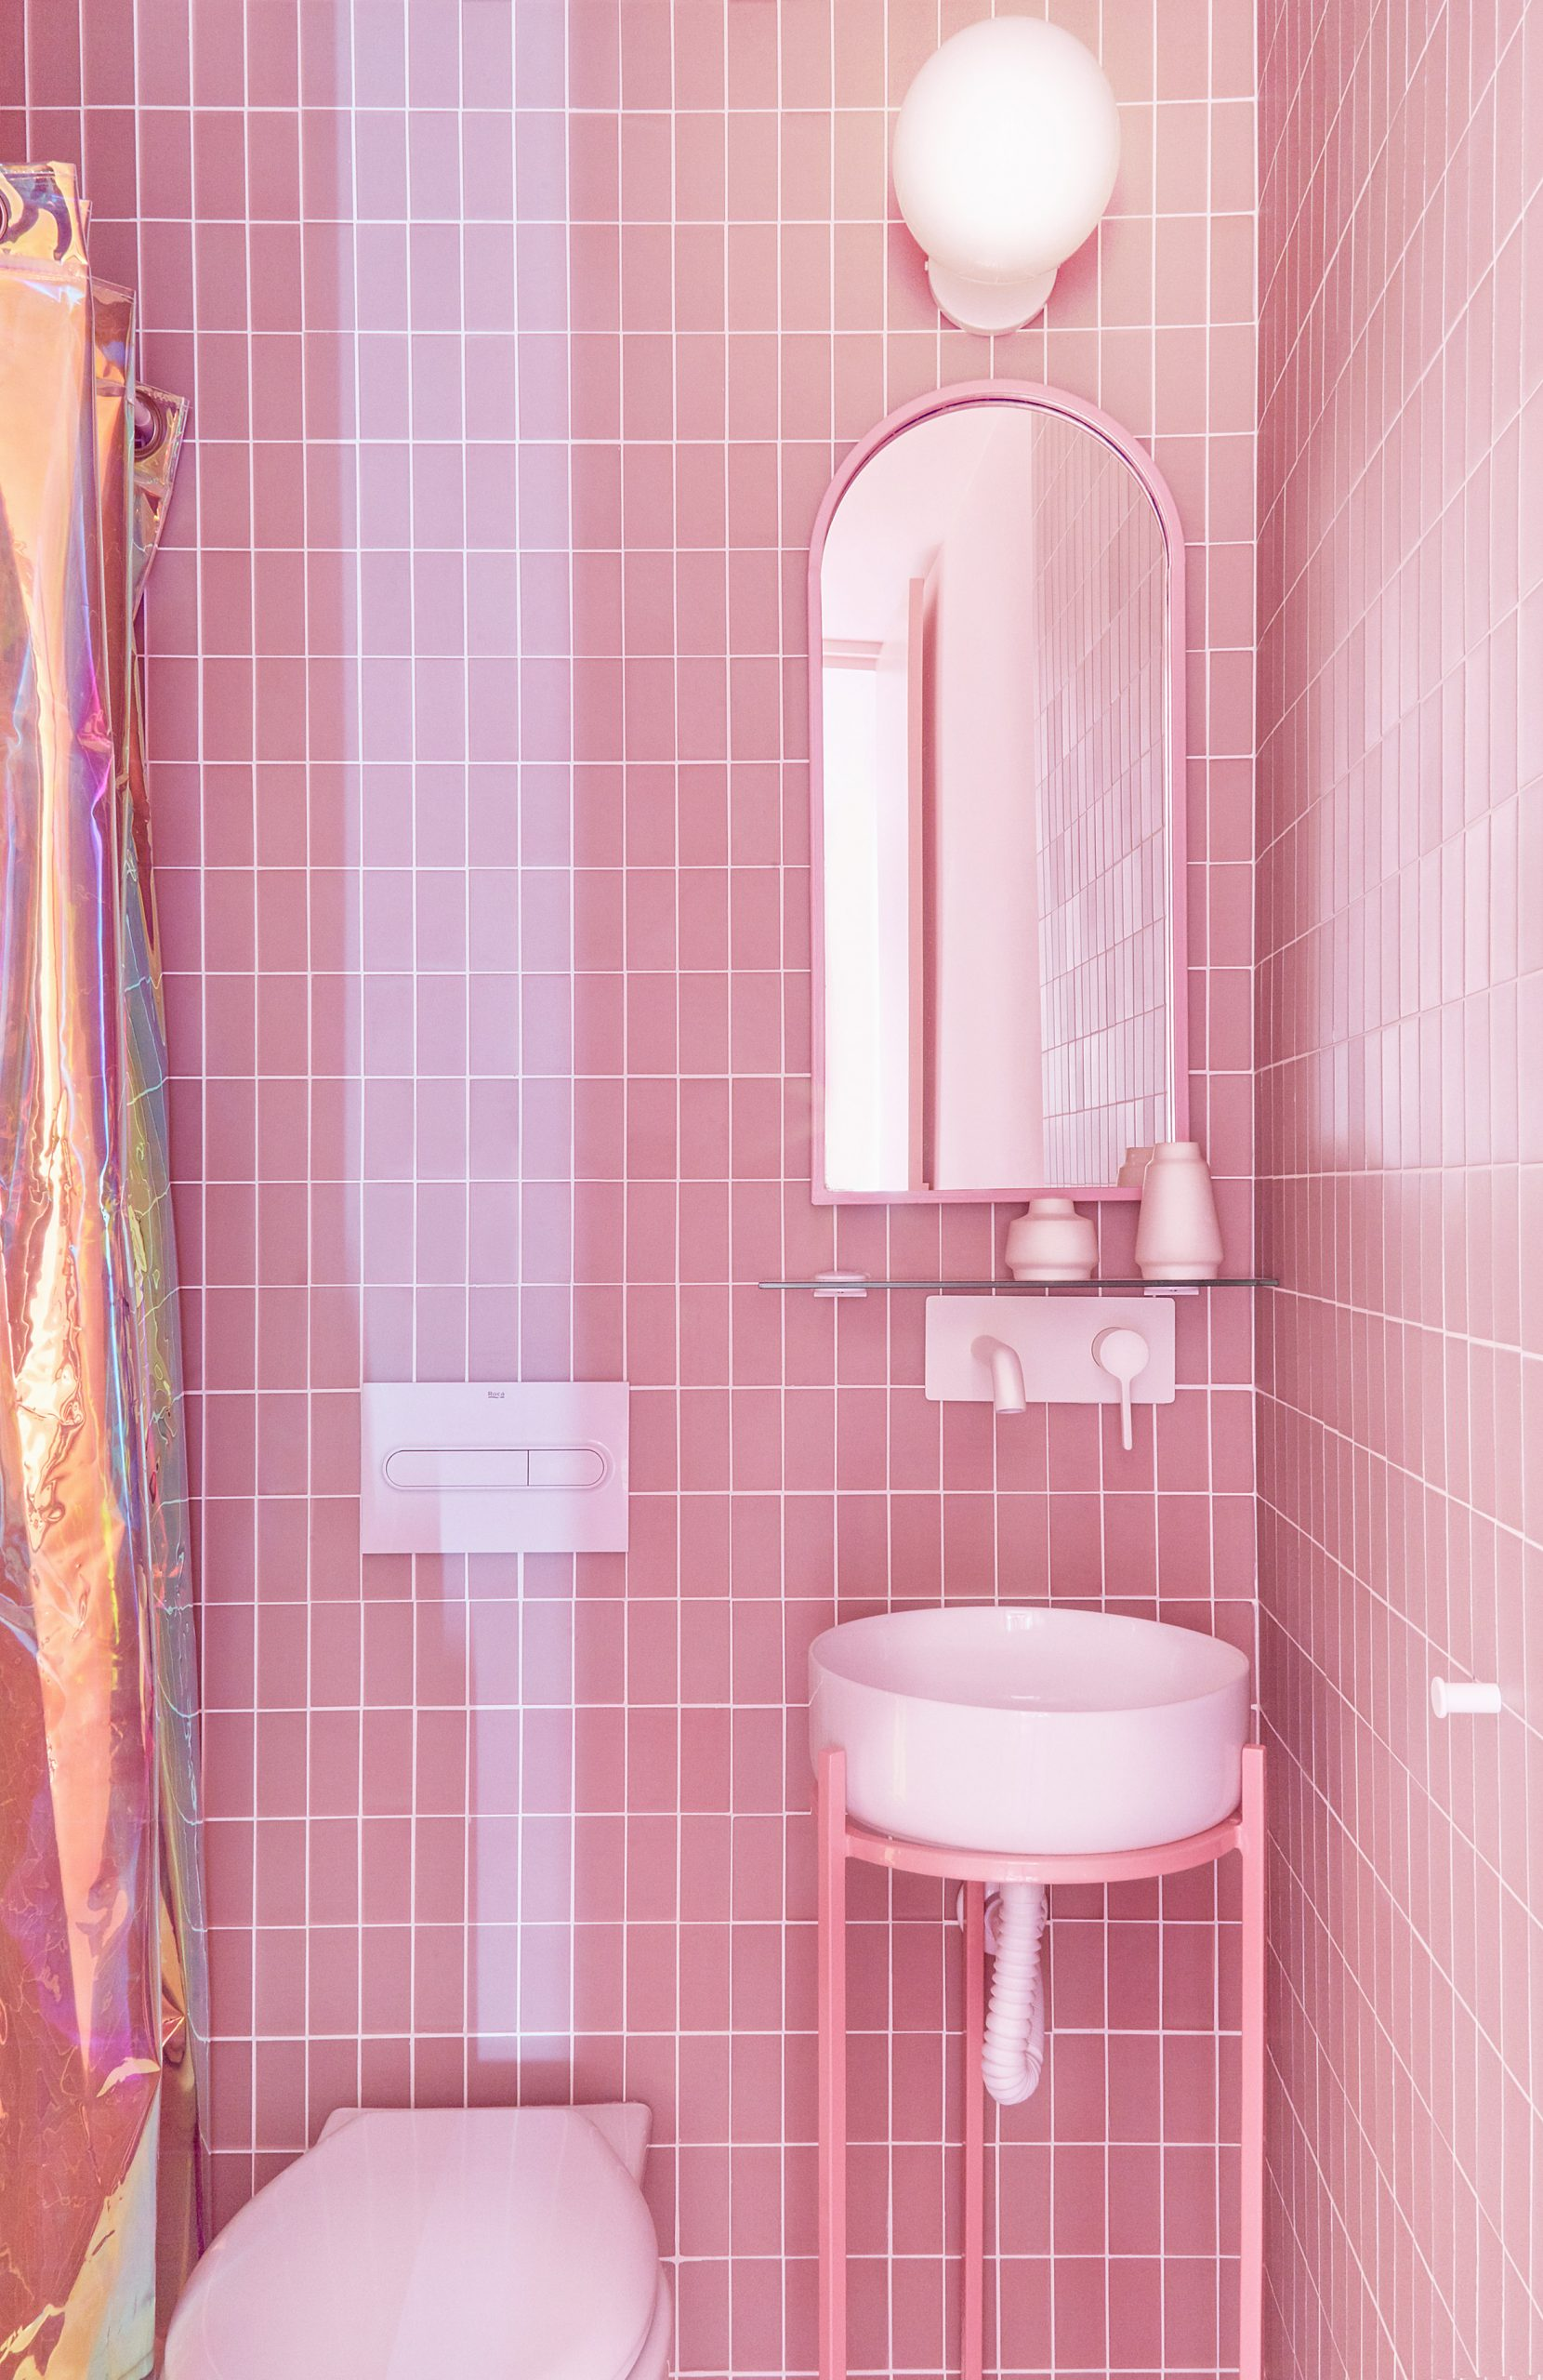 Bathrooms of Minimal Fantasy, a pink apartment in Madrid